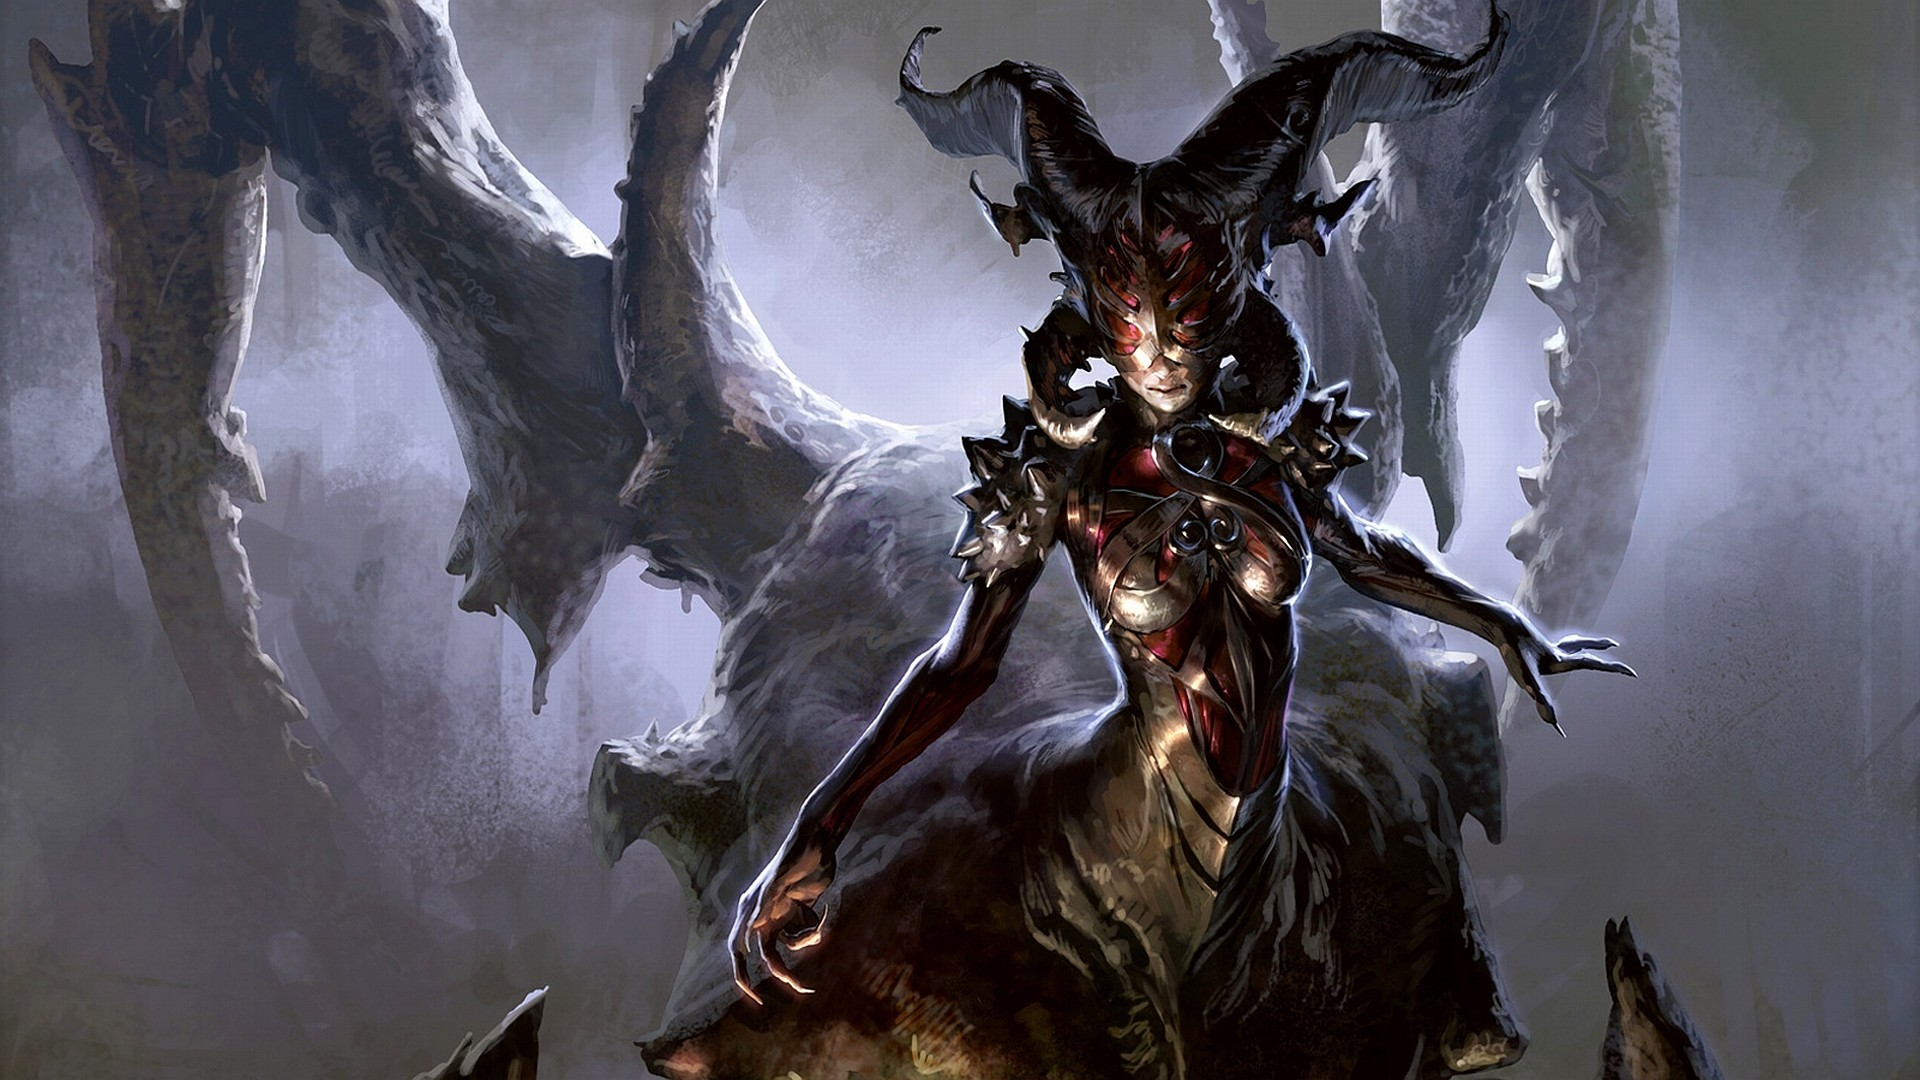 1920x1080 Artwork Demon Girl Demons Devil Fantasy Art Magic The Gathering ...